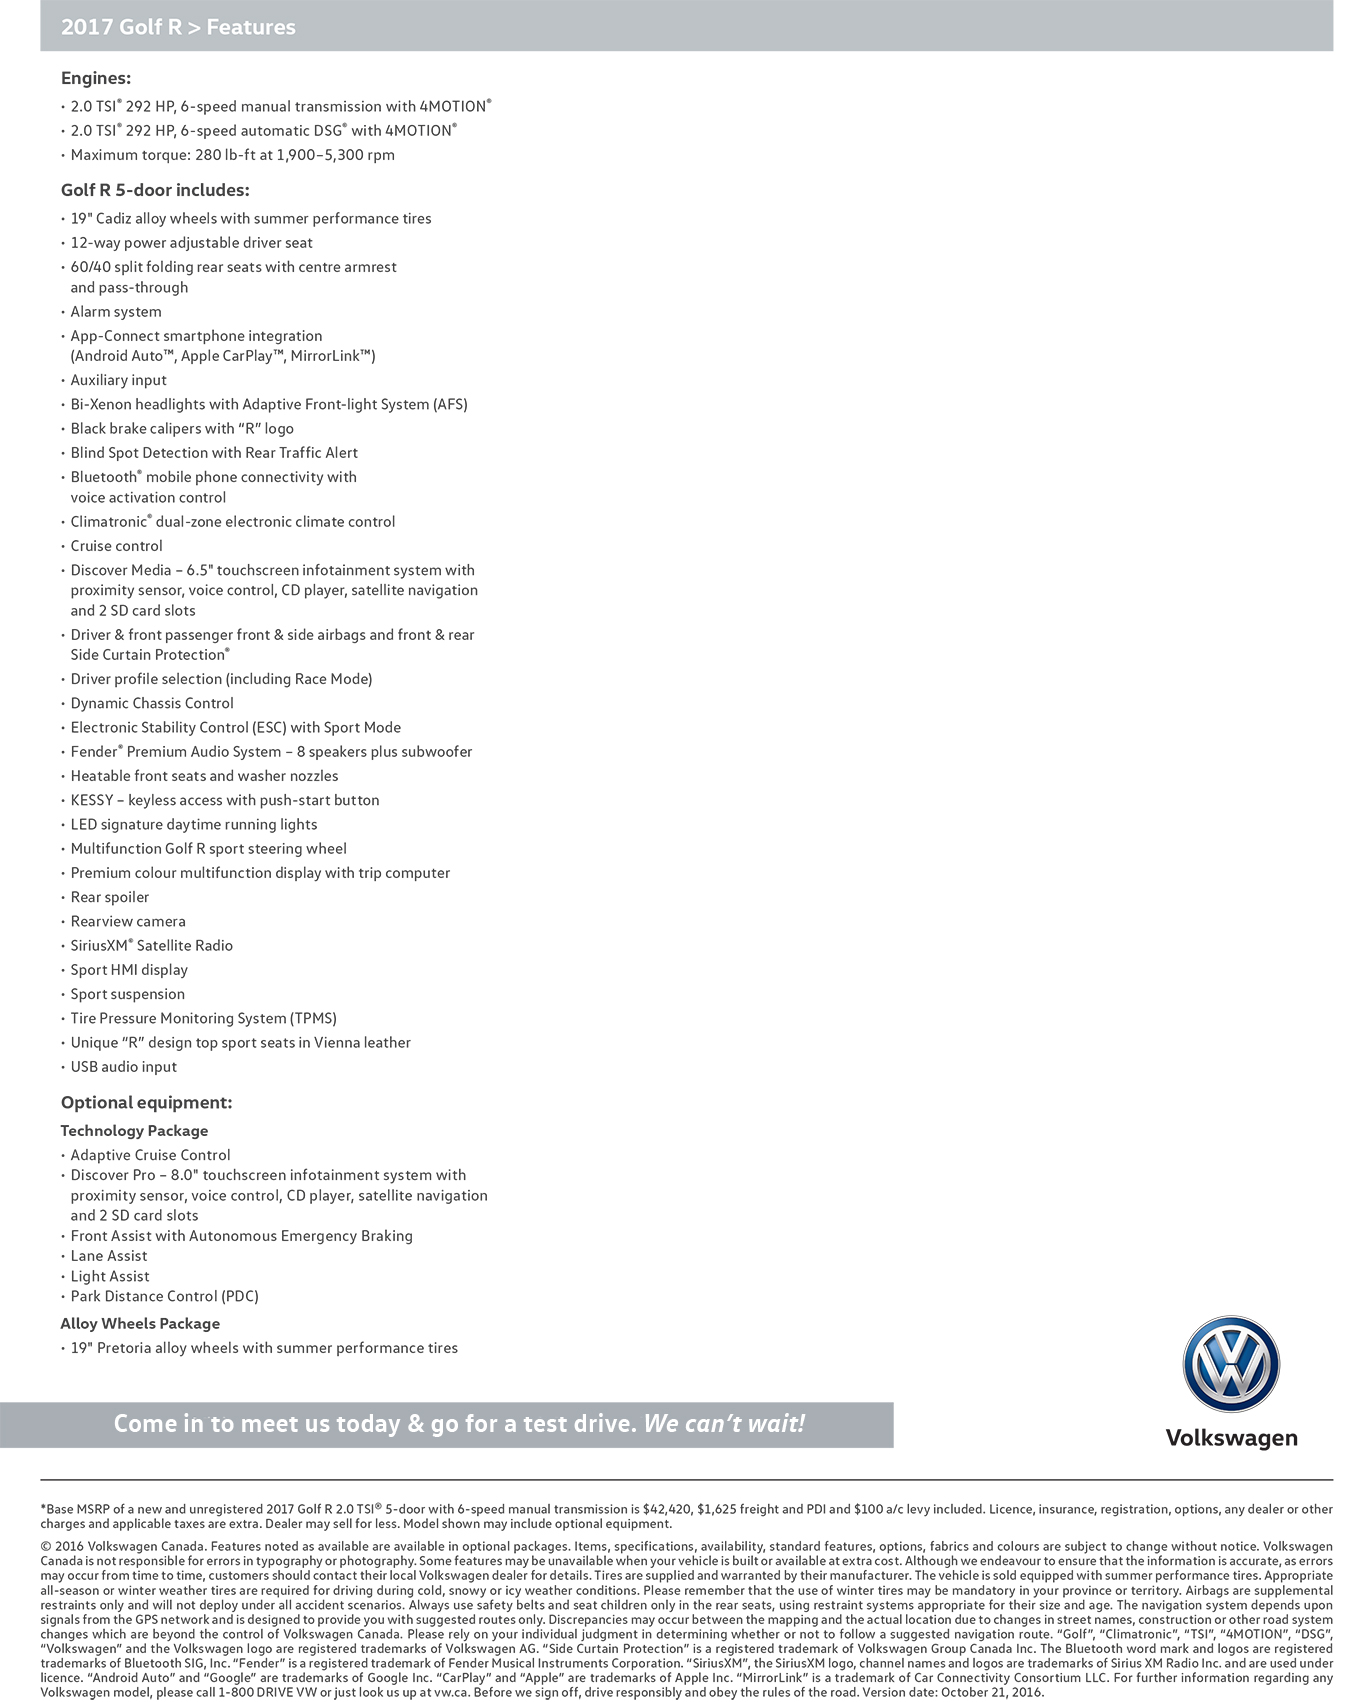 2017 Golf R features and specifications